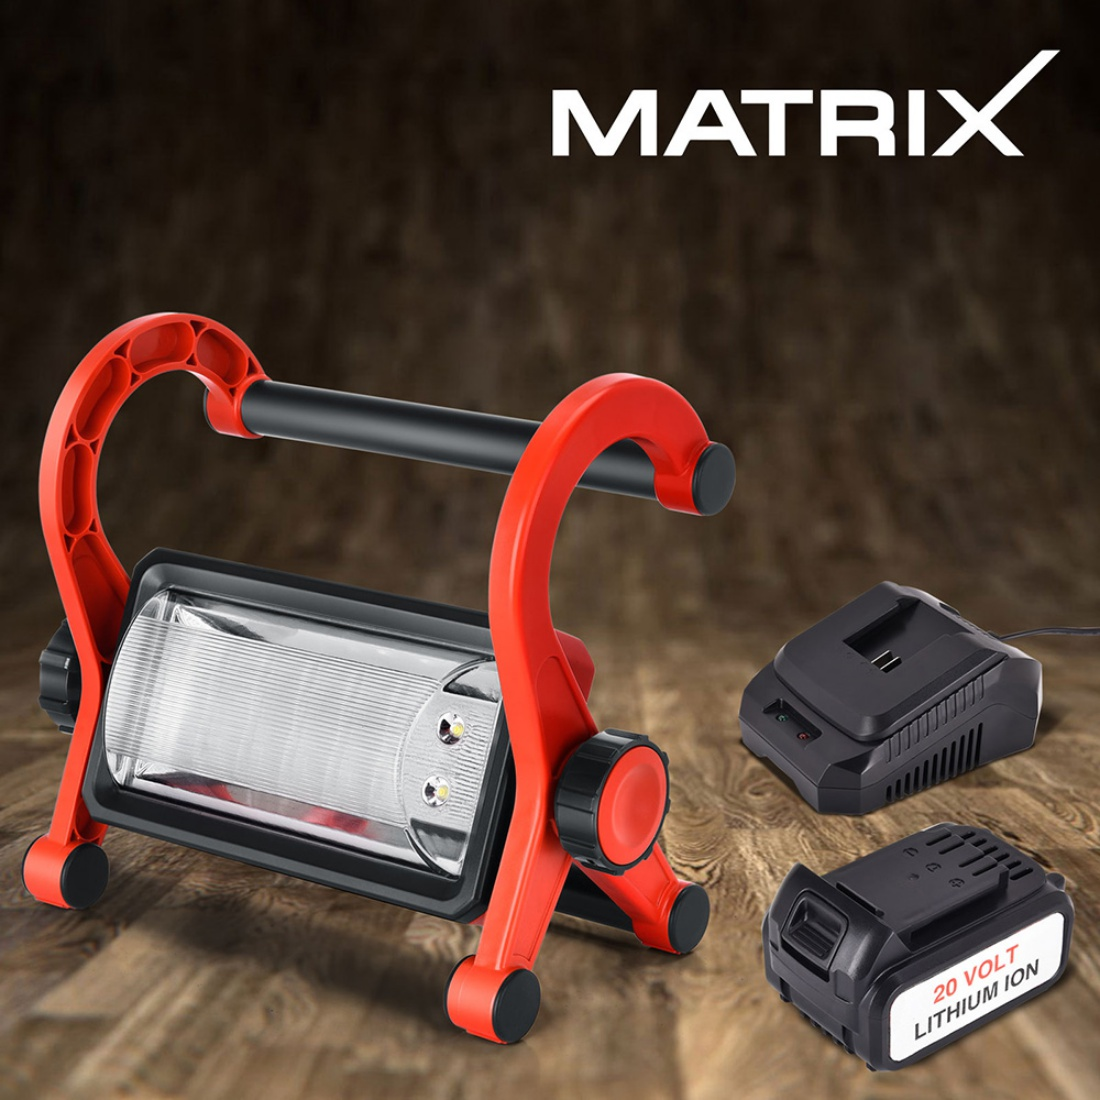 NEW Matrix 20V Cordless LED Work Light Waterproof 4.0ah Lithium Battery Charger